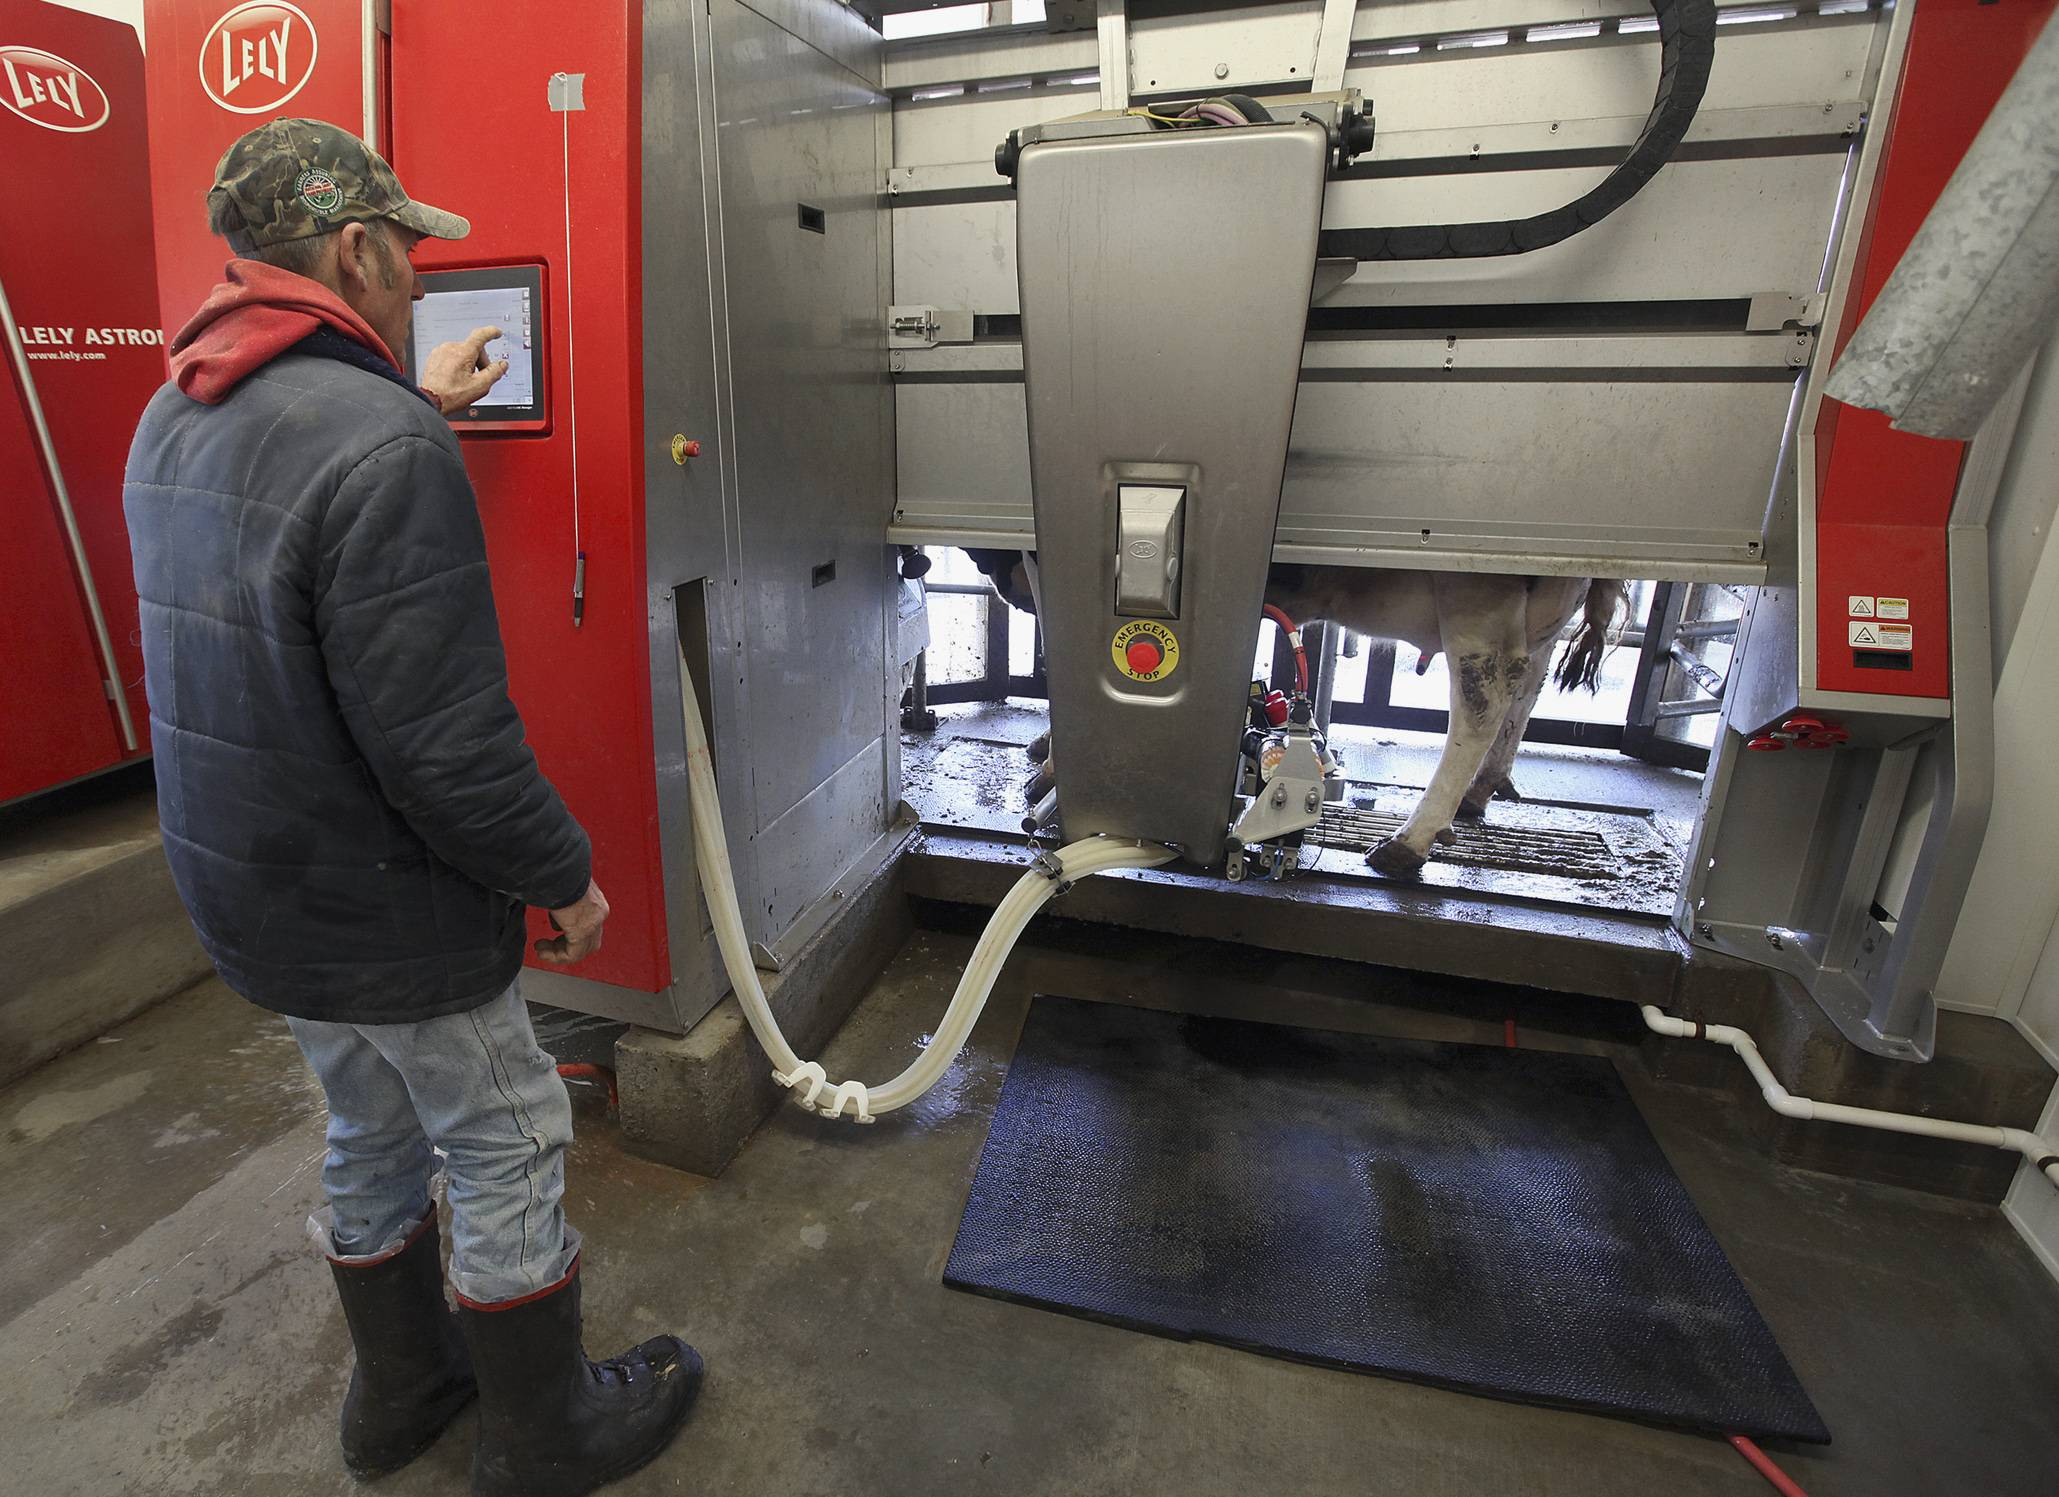 Roger Shupe checks the robotic milking system he and his brother Rod Shupe use on their dairy farm near Mendon